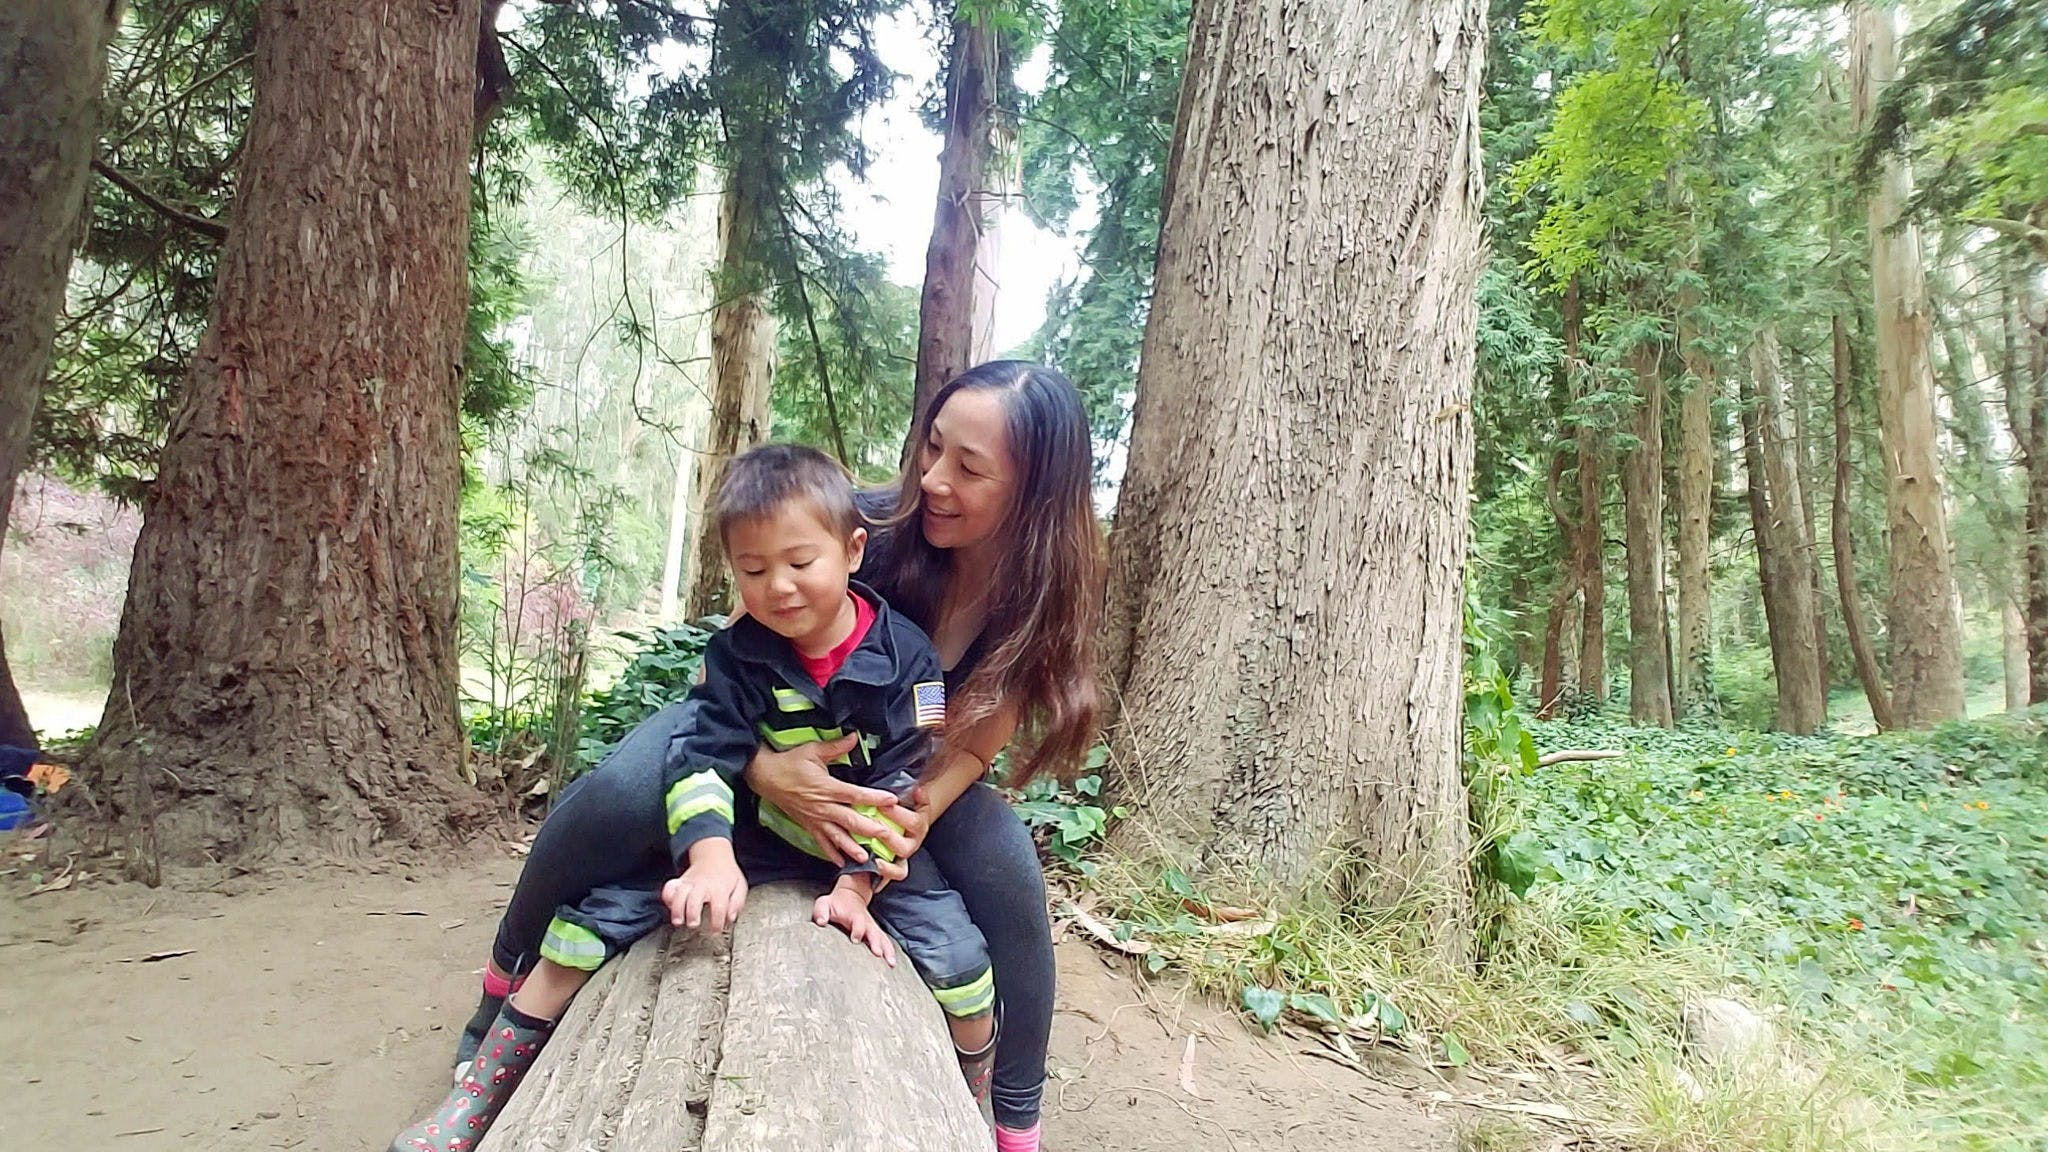 Woman and her child in Stern Grove in San Francisco